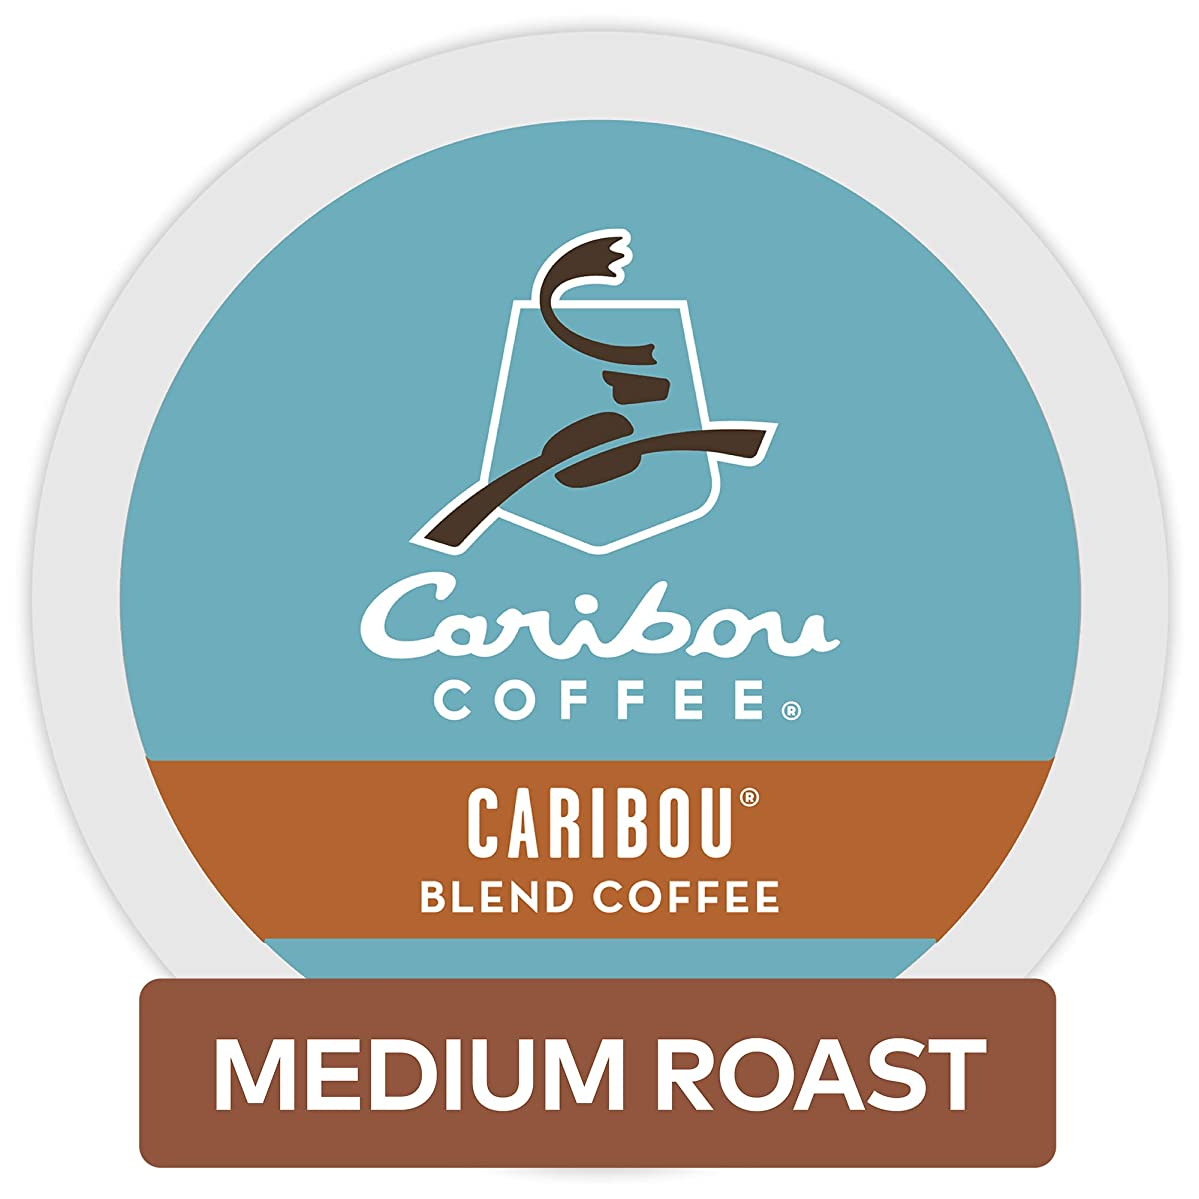 Caribou Coffee Caribou Blend, Single Serve Coffee K-Cup Pod, Medium Roast, 12 count, Pack of 6